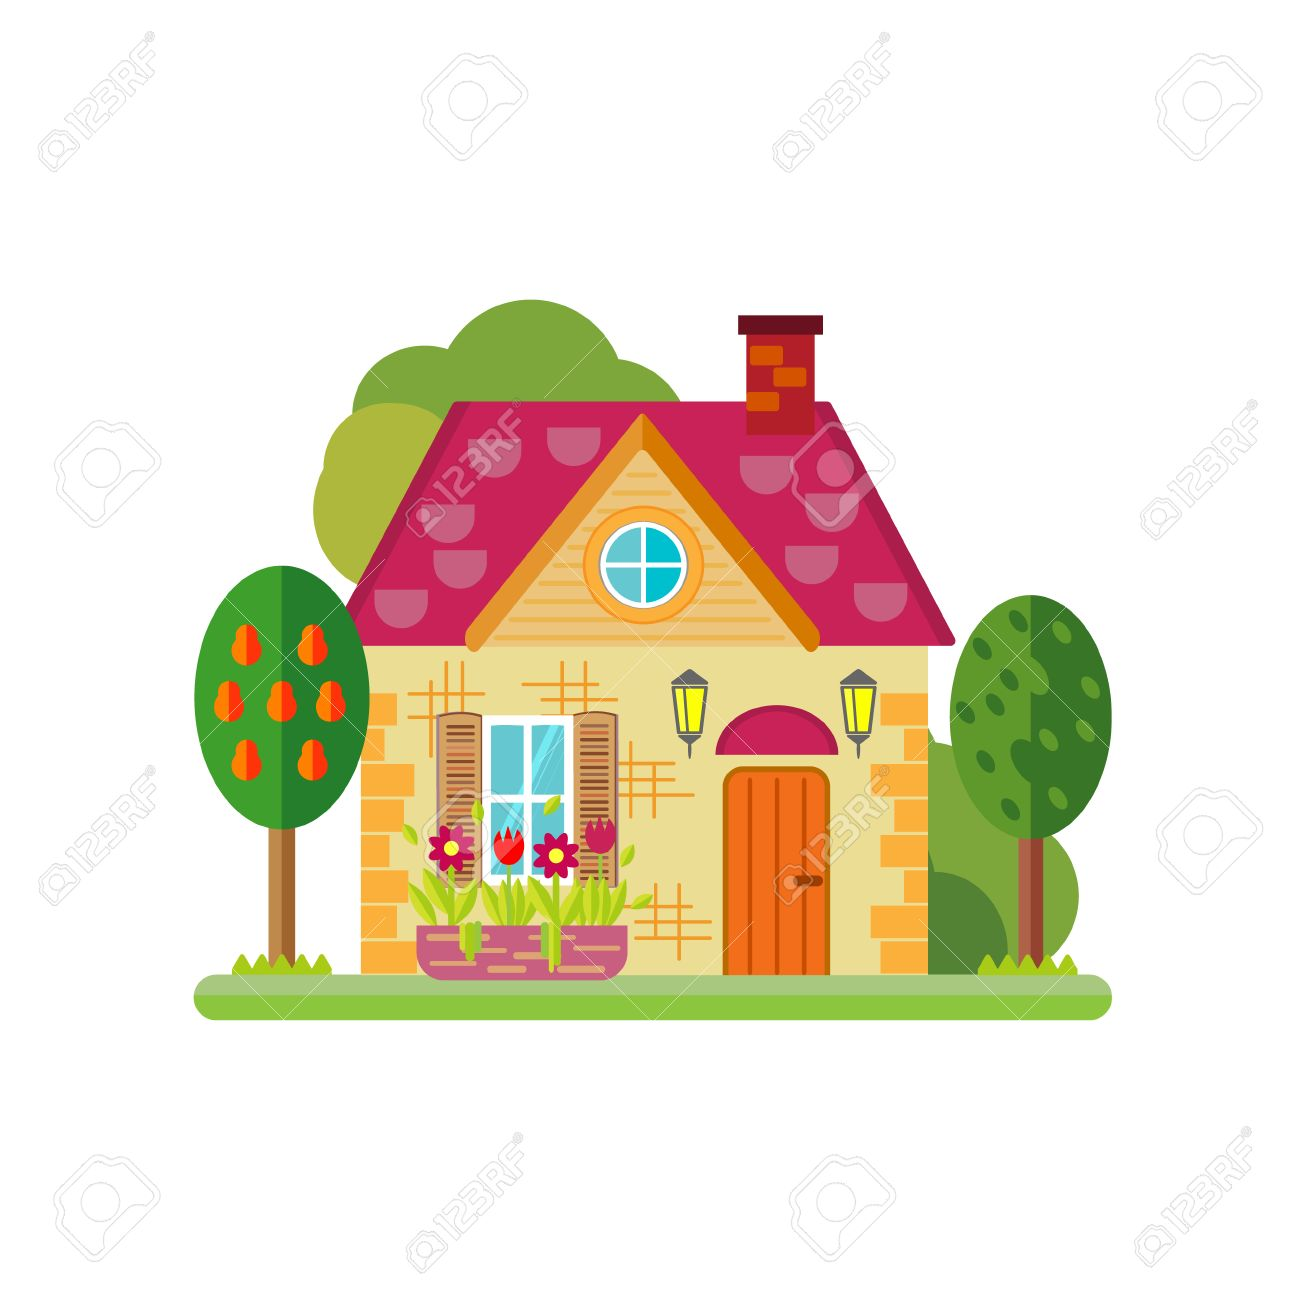 vector illustration of cute colorful house vector flat buildings rh 123rf com house vector silhouette house vector silhouette